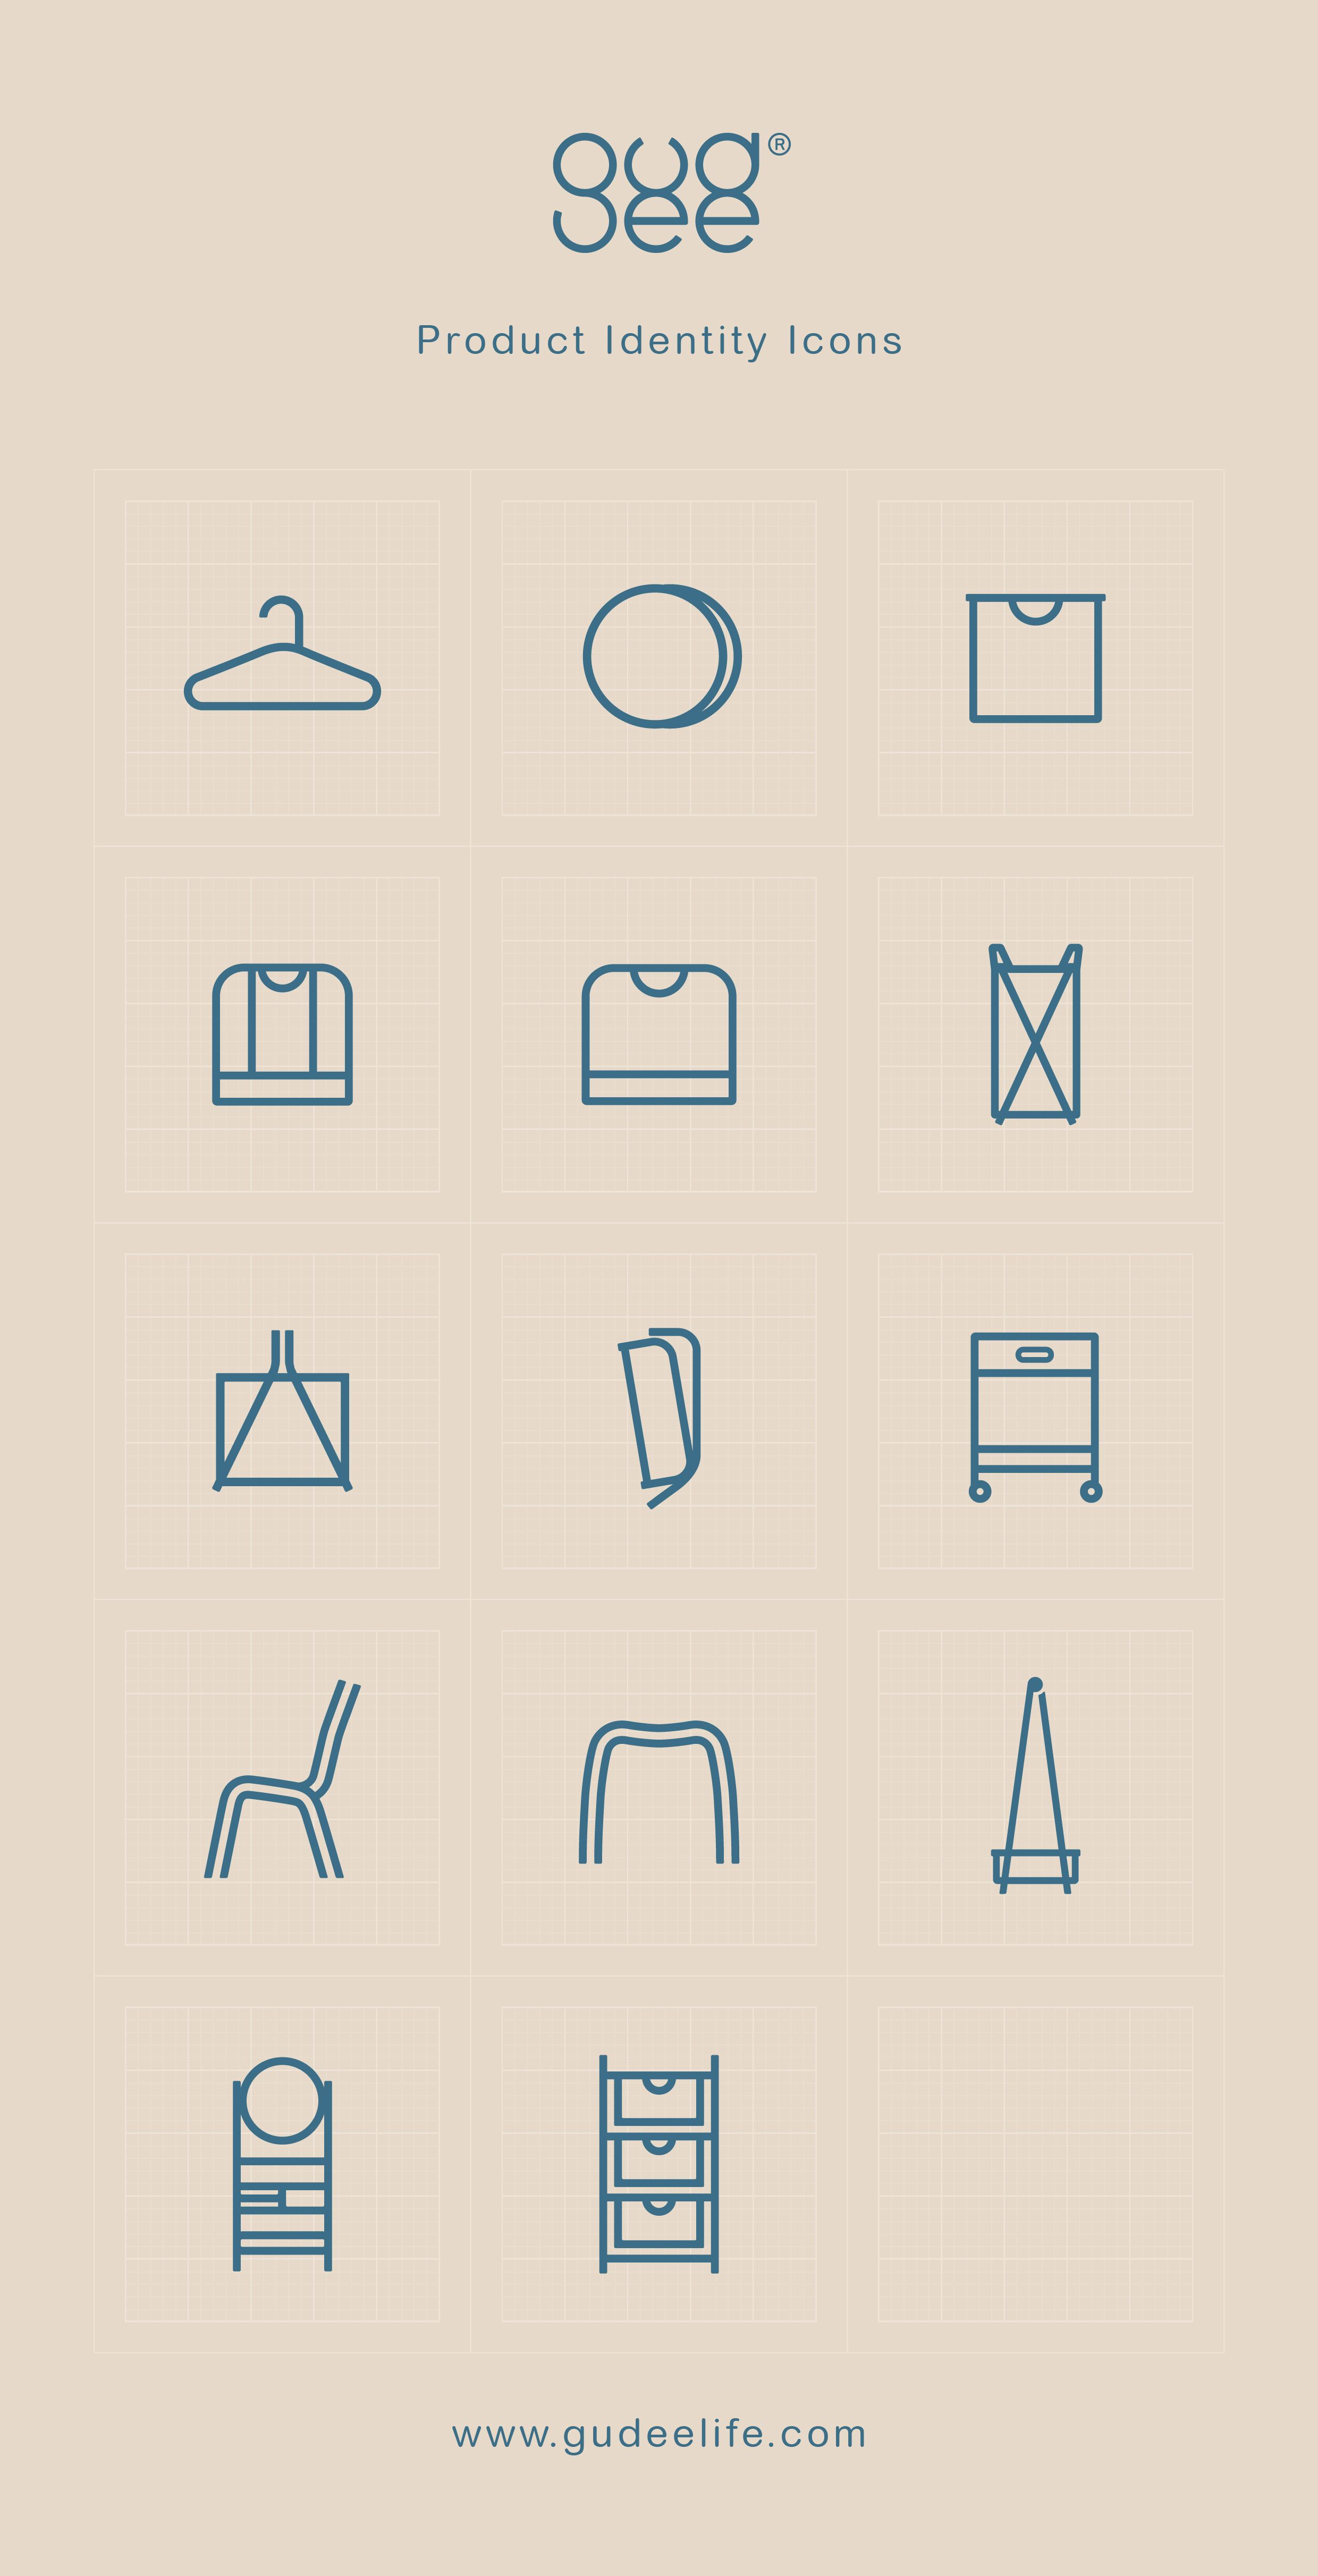 Product Identity Icons From Gudeelife Com Our Mission Is To Create Smart Design For Your Better Lifestyle Stylish Home Decor Smart Design Simple